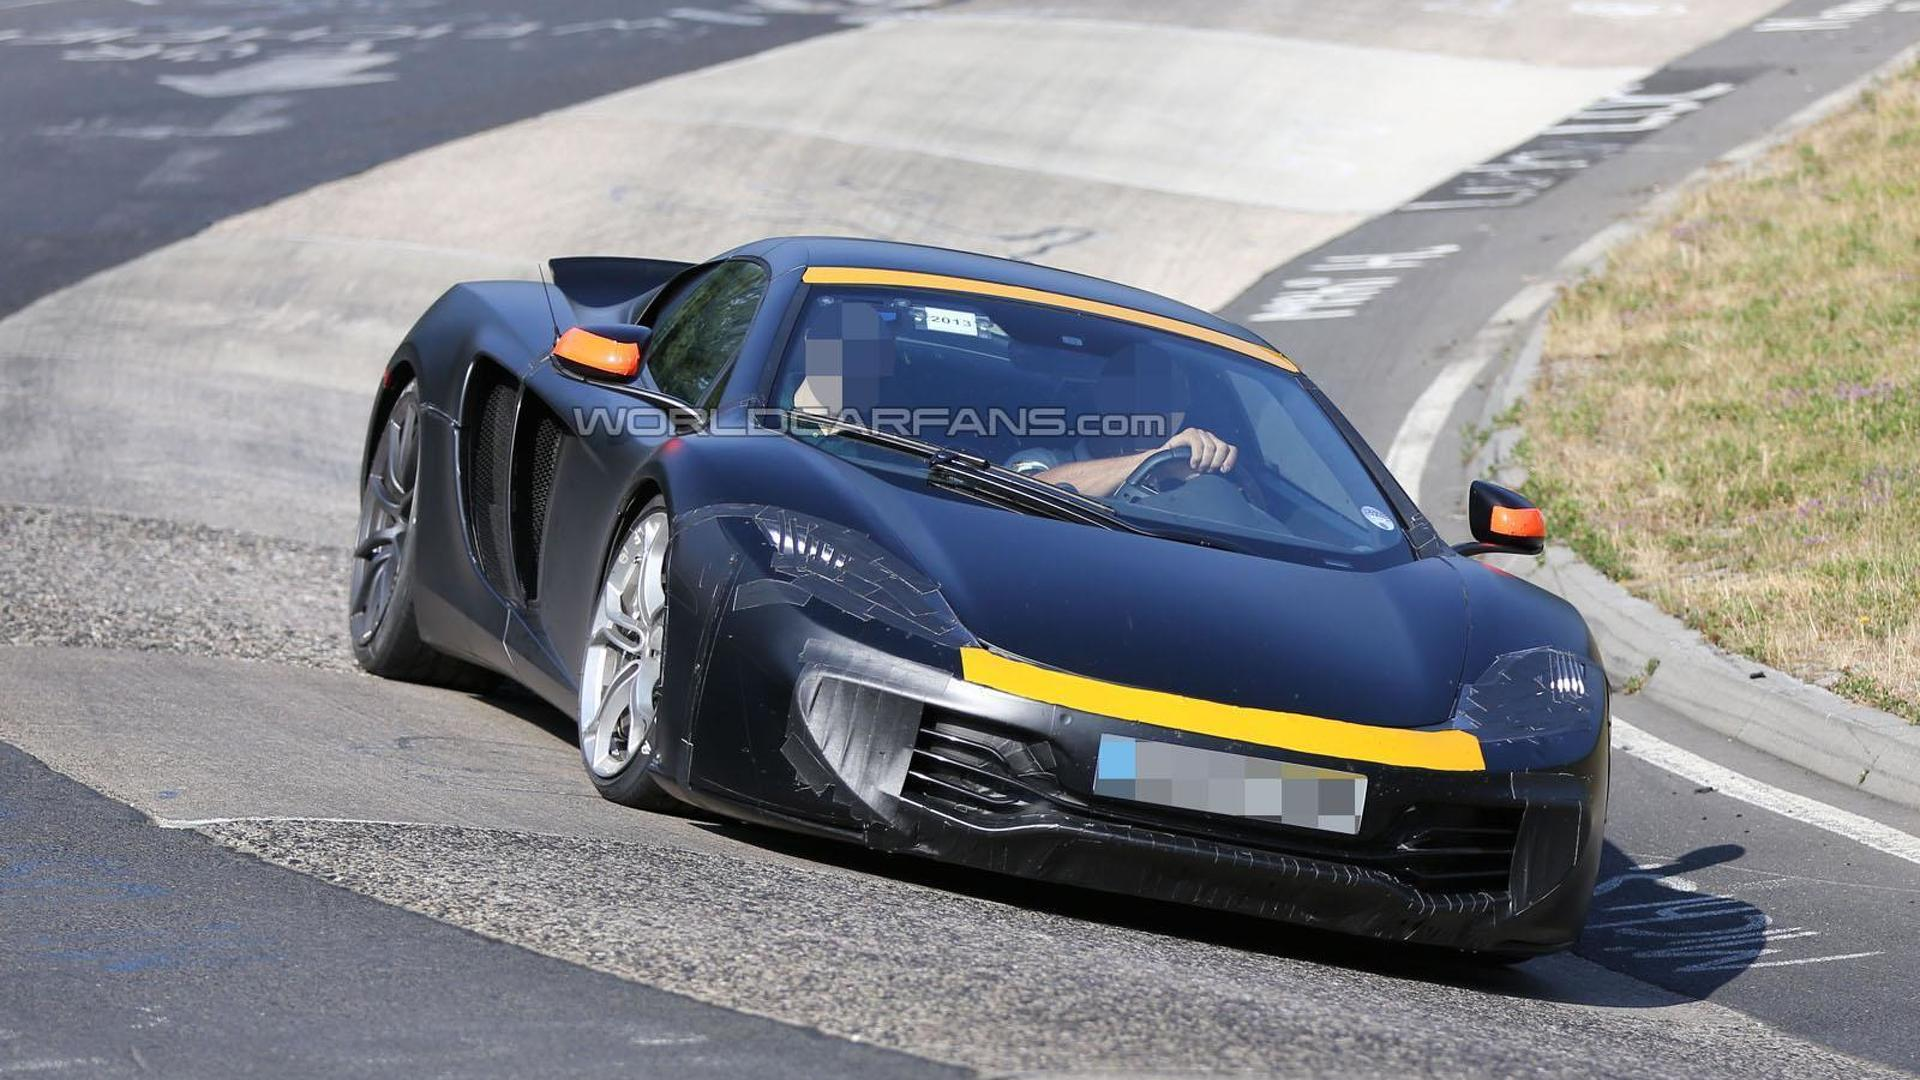 2015 McLaren P13 to have P1-inspired styling - report